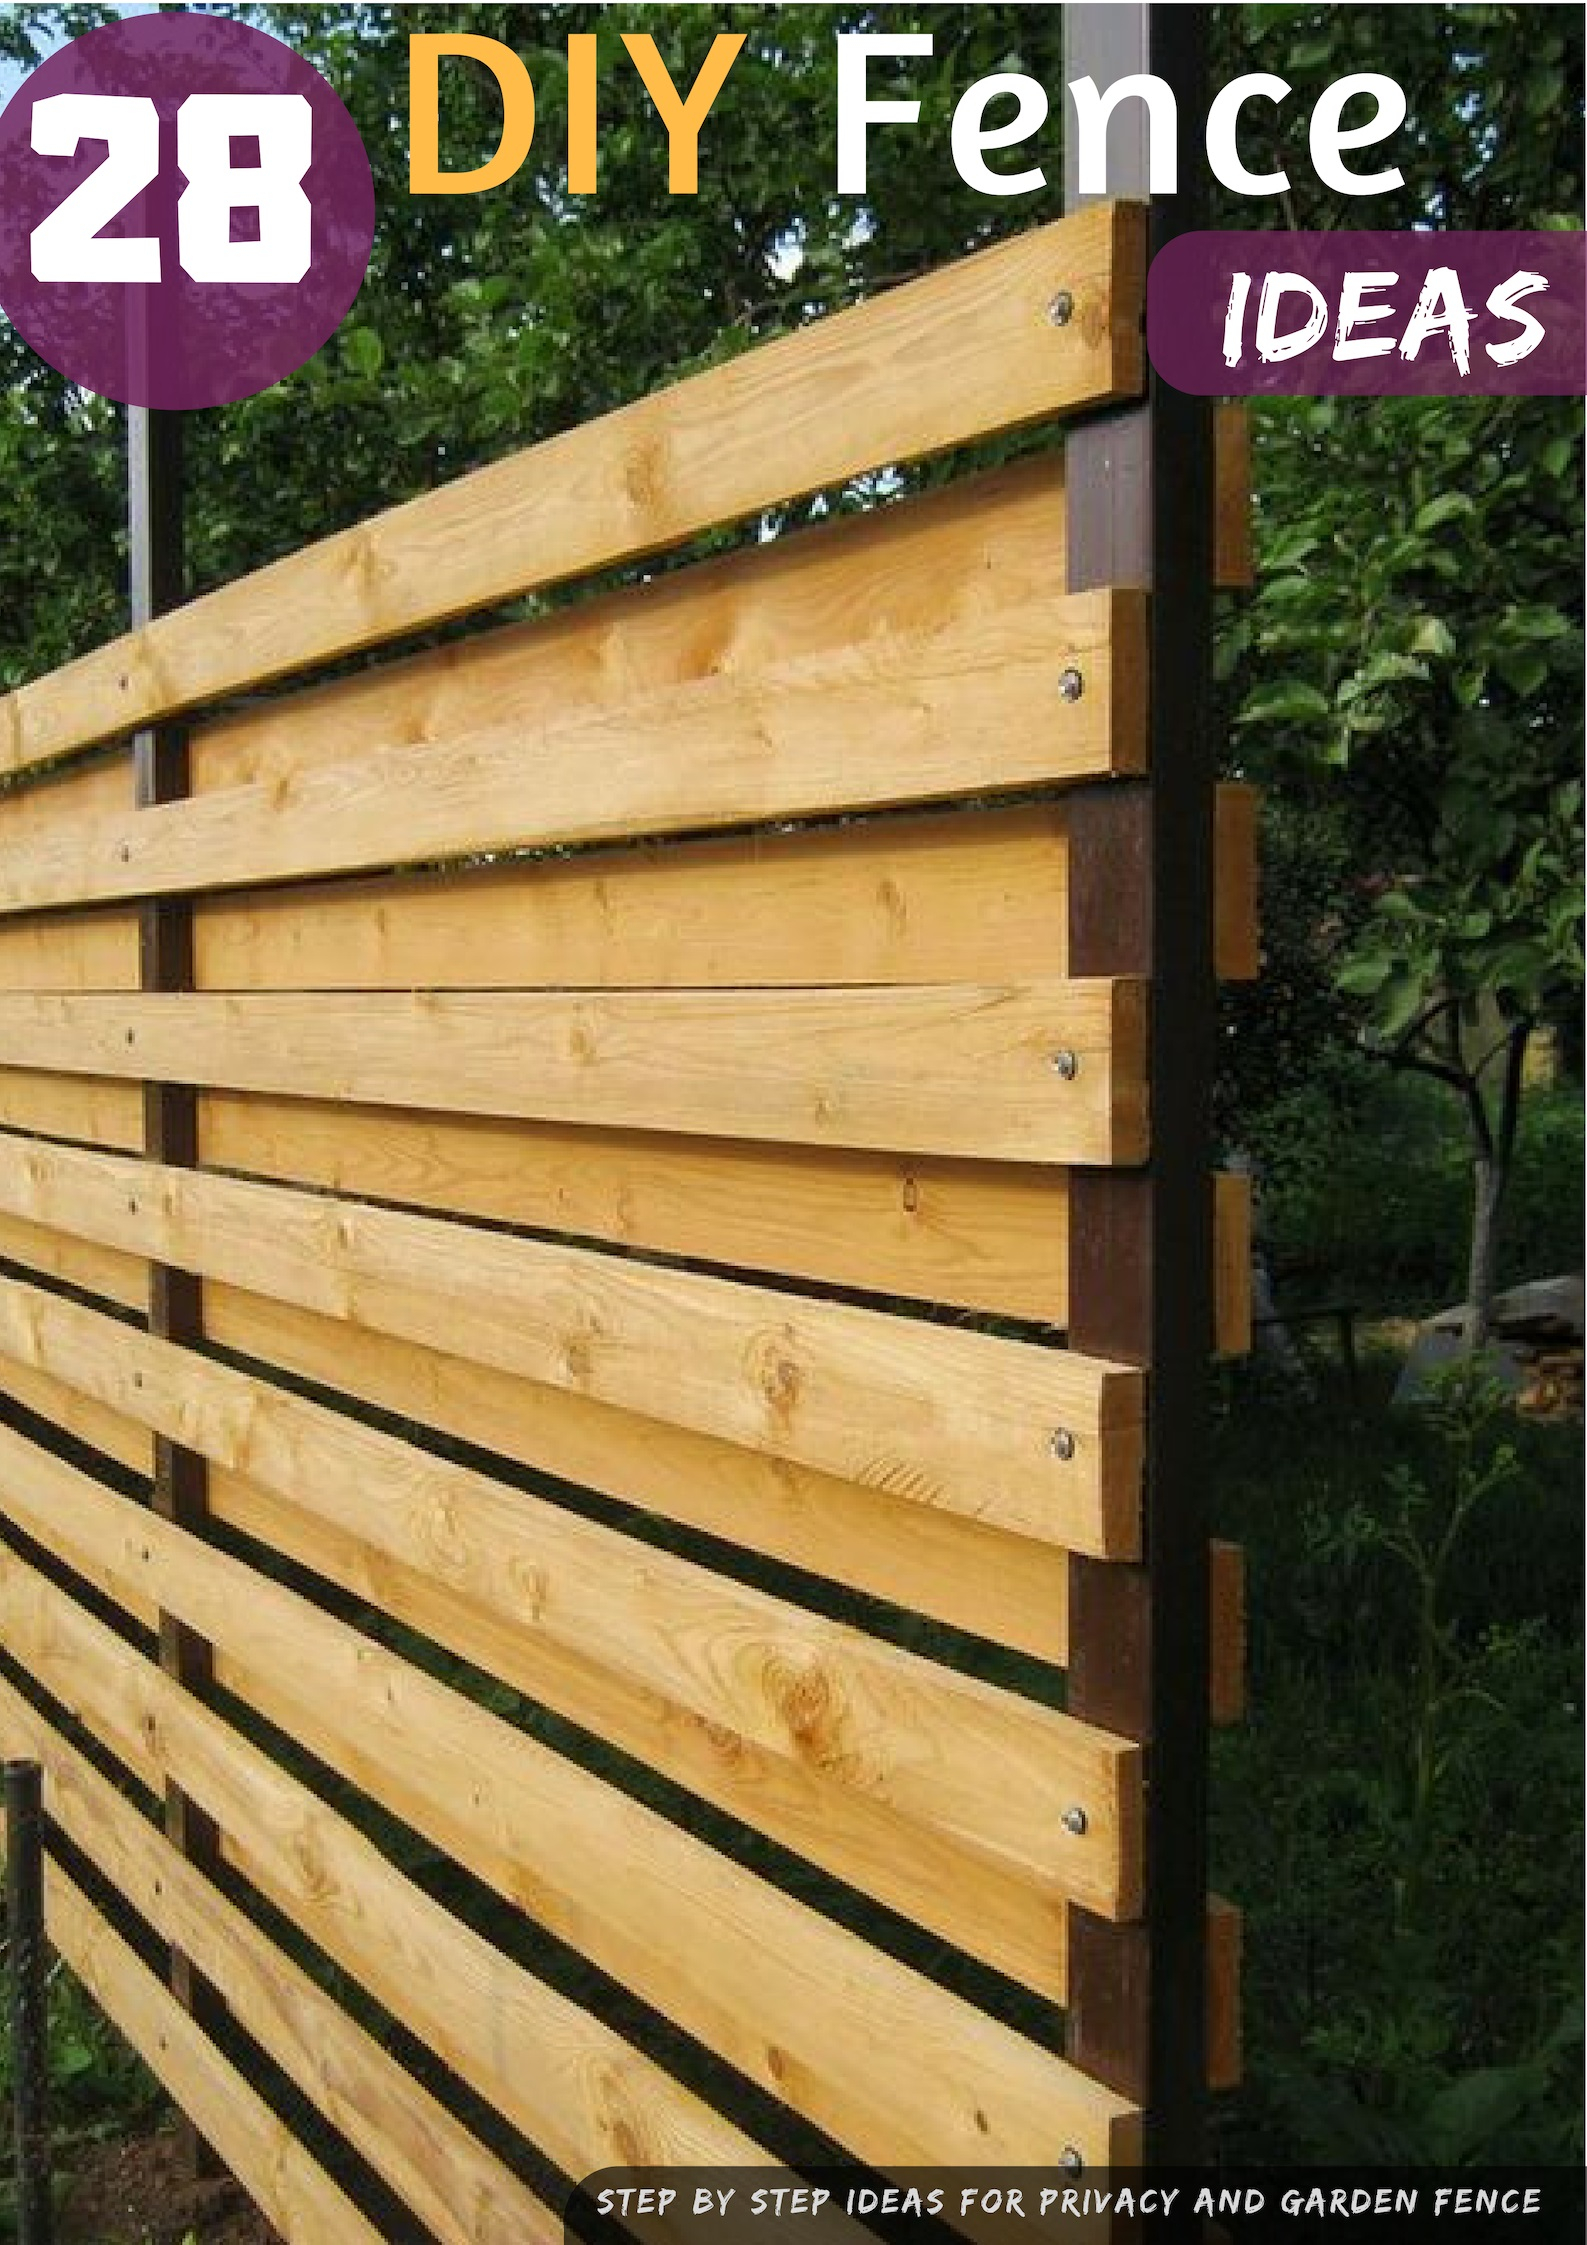 29 Diy Fence Ideas Garden And Privacy Fence Ideas On A Budget in Cheap Backyard Fencing